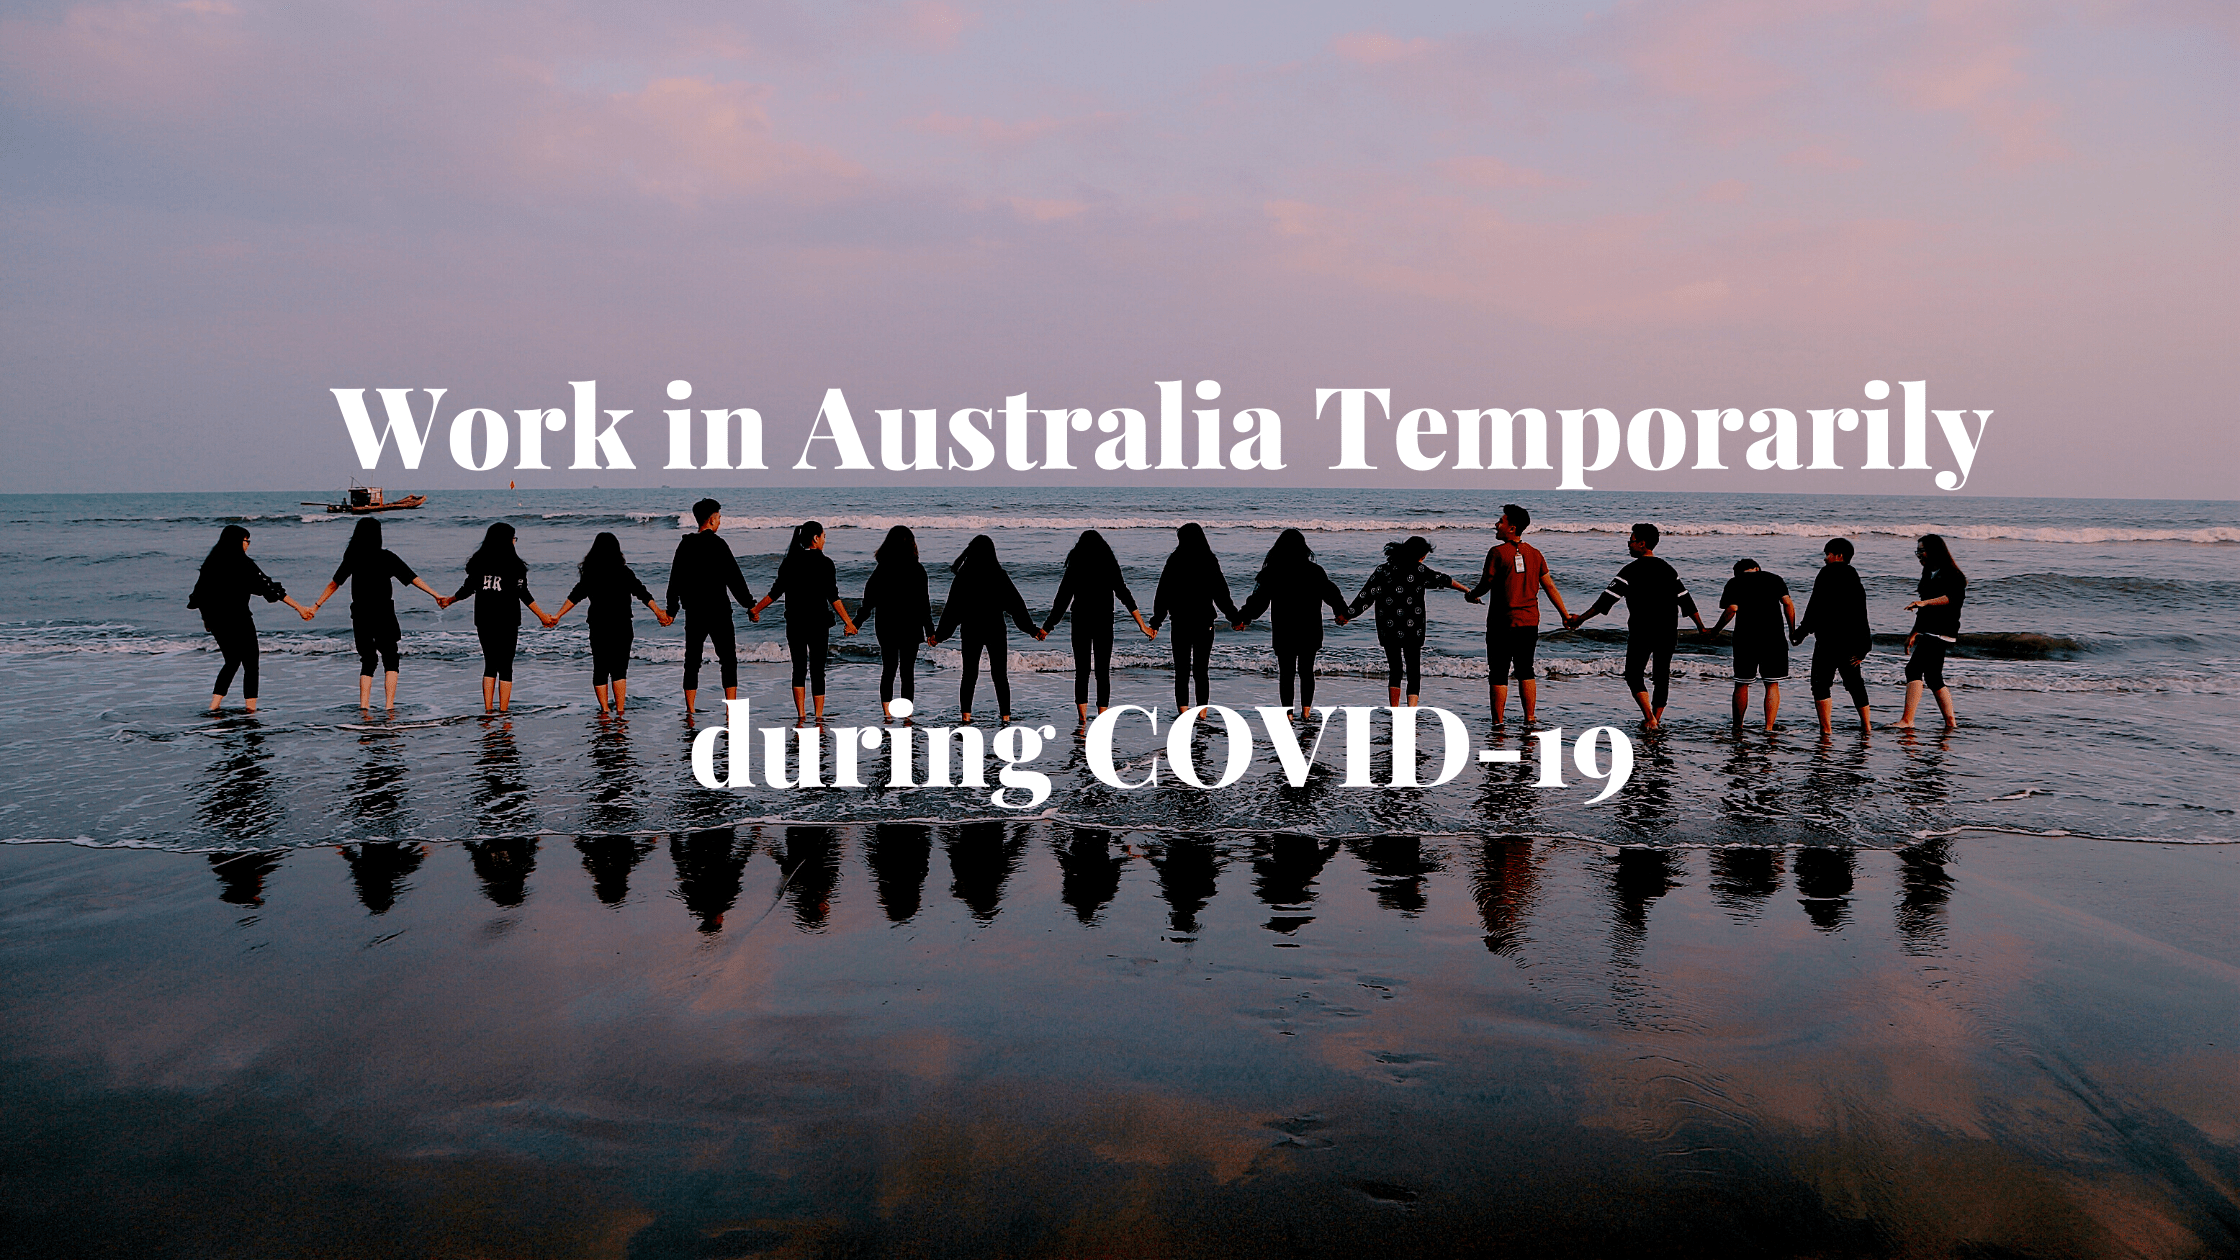 Work in Australia Temporarily during COVID-19 1